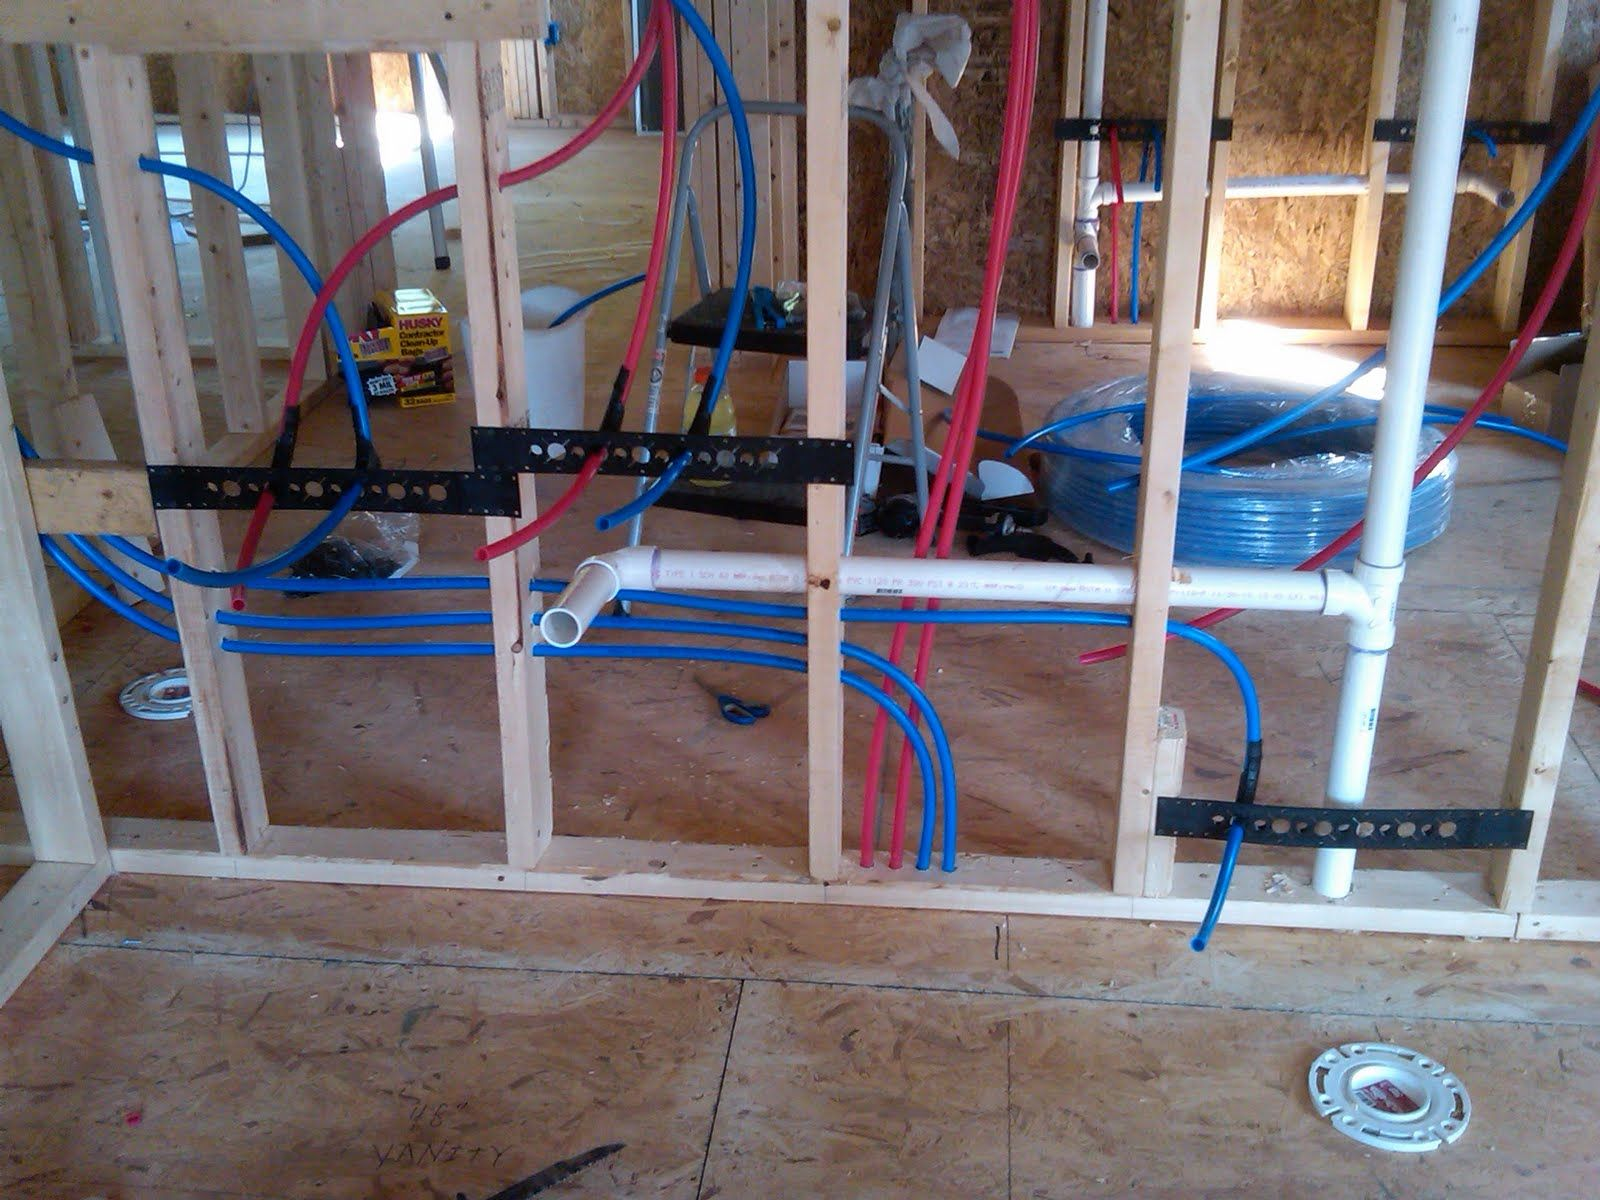 plumbing pex water lines install for toilet u0026 sinks u0026 drain pipe (photo) & plumbing pex water lines install for toilet u0026 sinks u0026 drain pipe ...